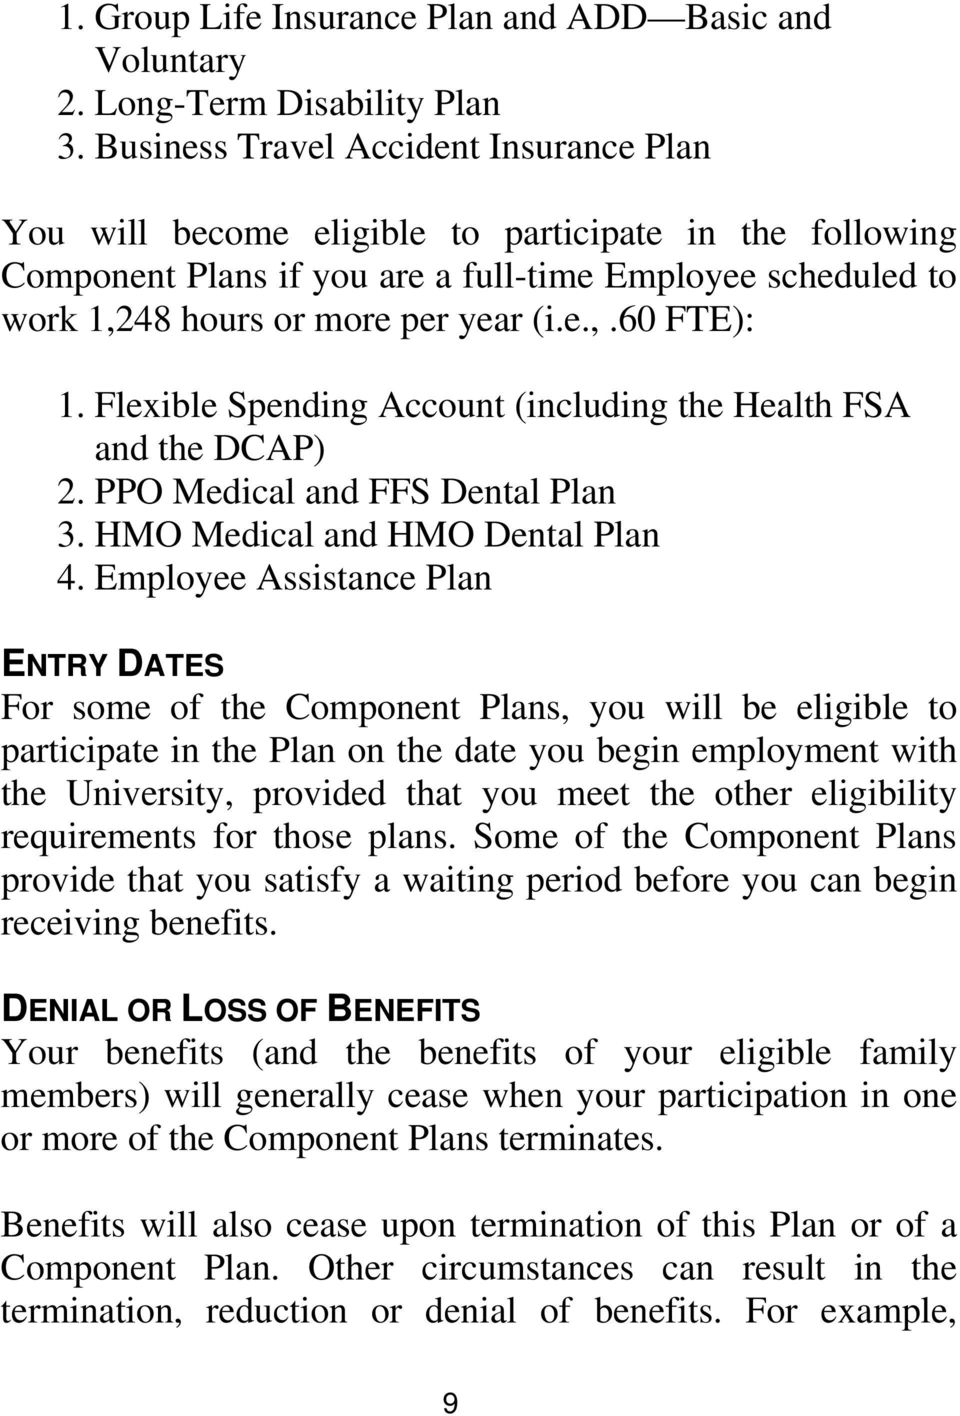 Flexible Spending Account (including the Health FSA and the DCAP) 2. PPO Medical and FFS Dental Plan 3. HMO Medical and HMO Dental Plan 4.